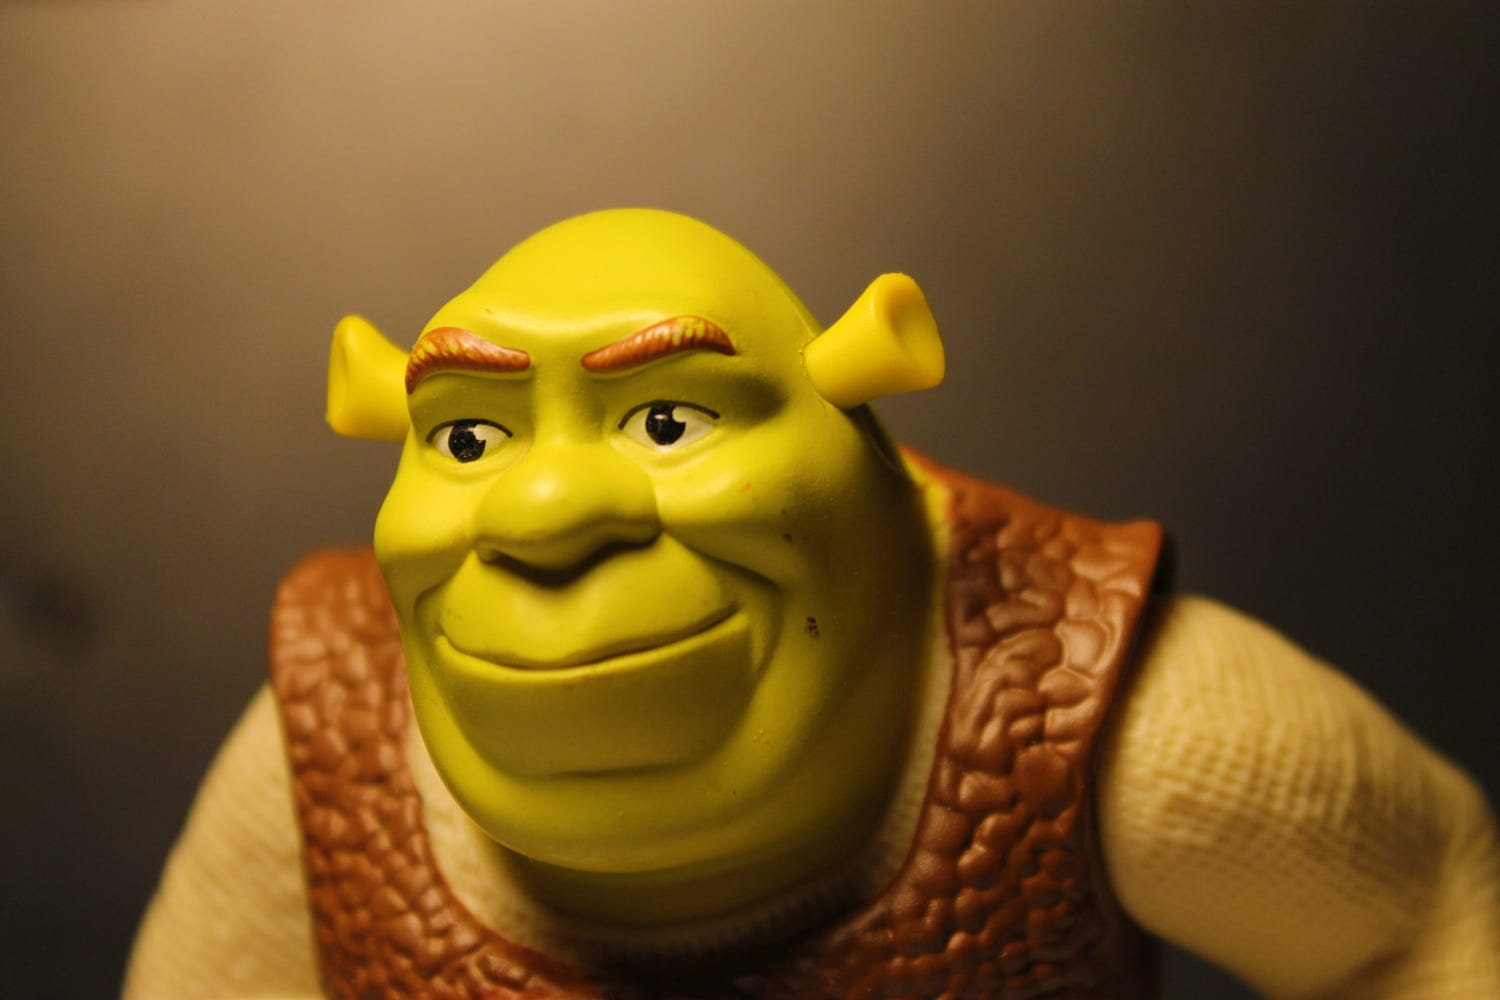 Shrek is one of the most famous ogres